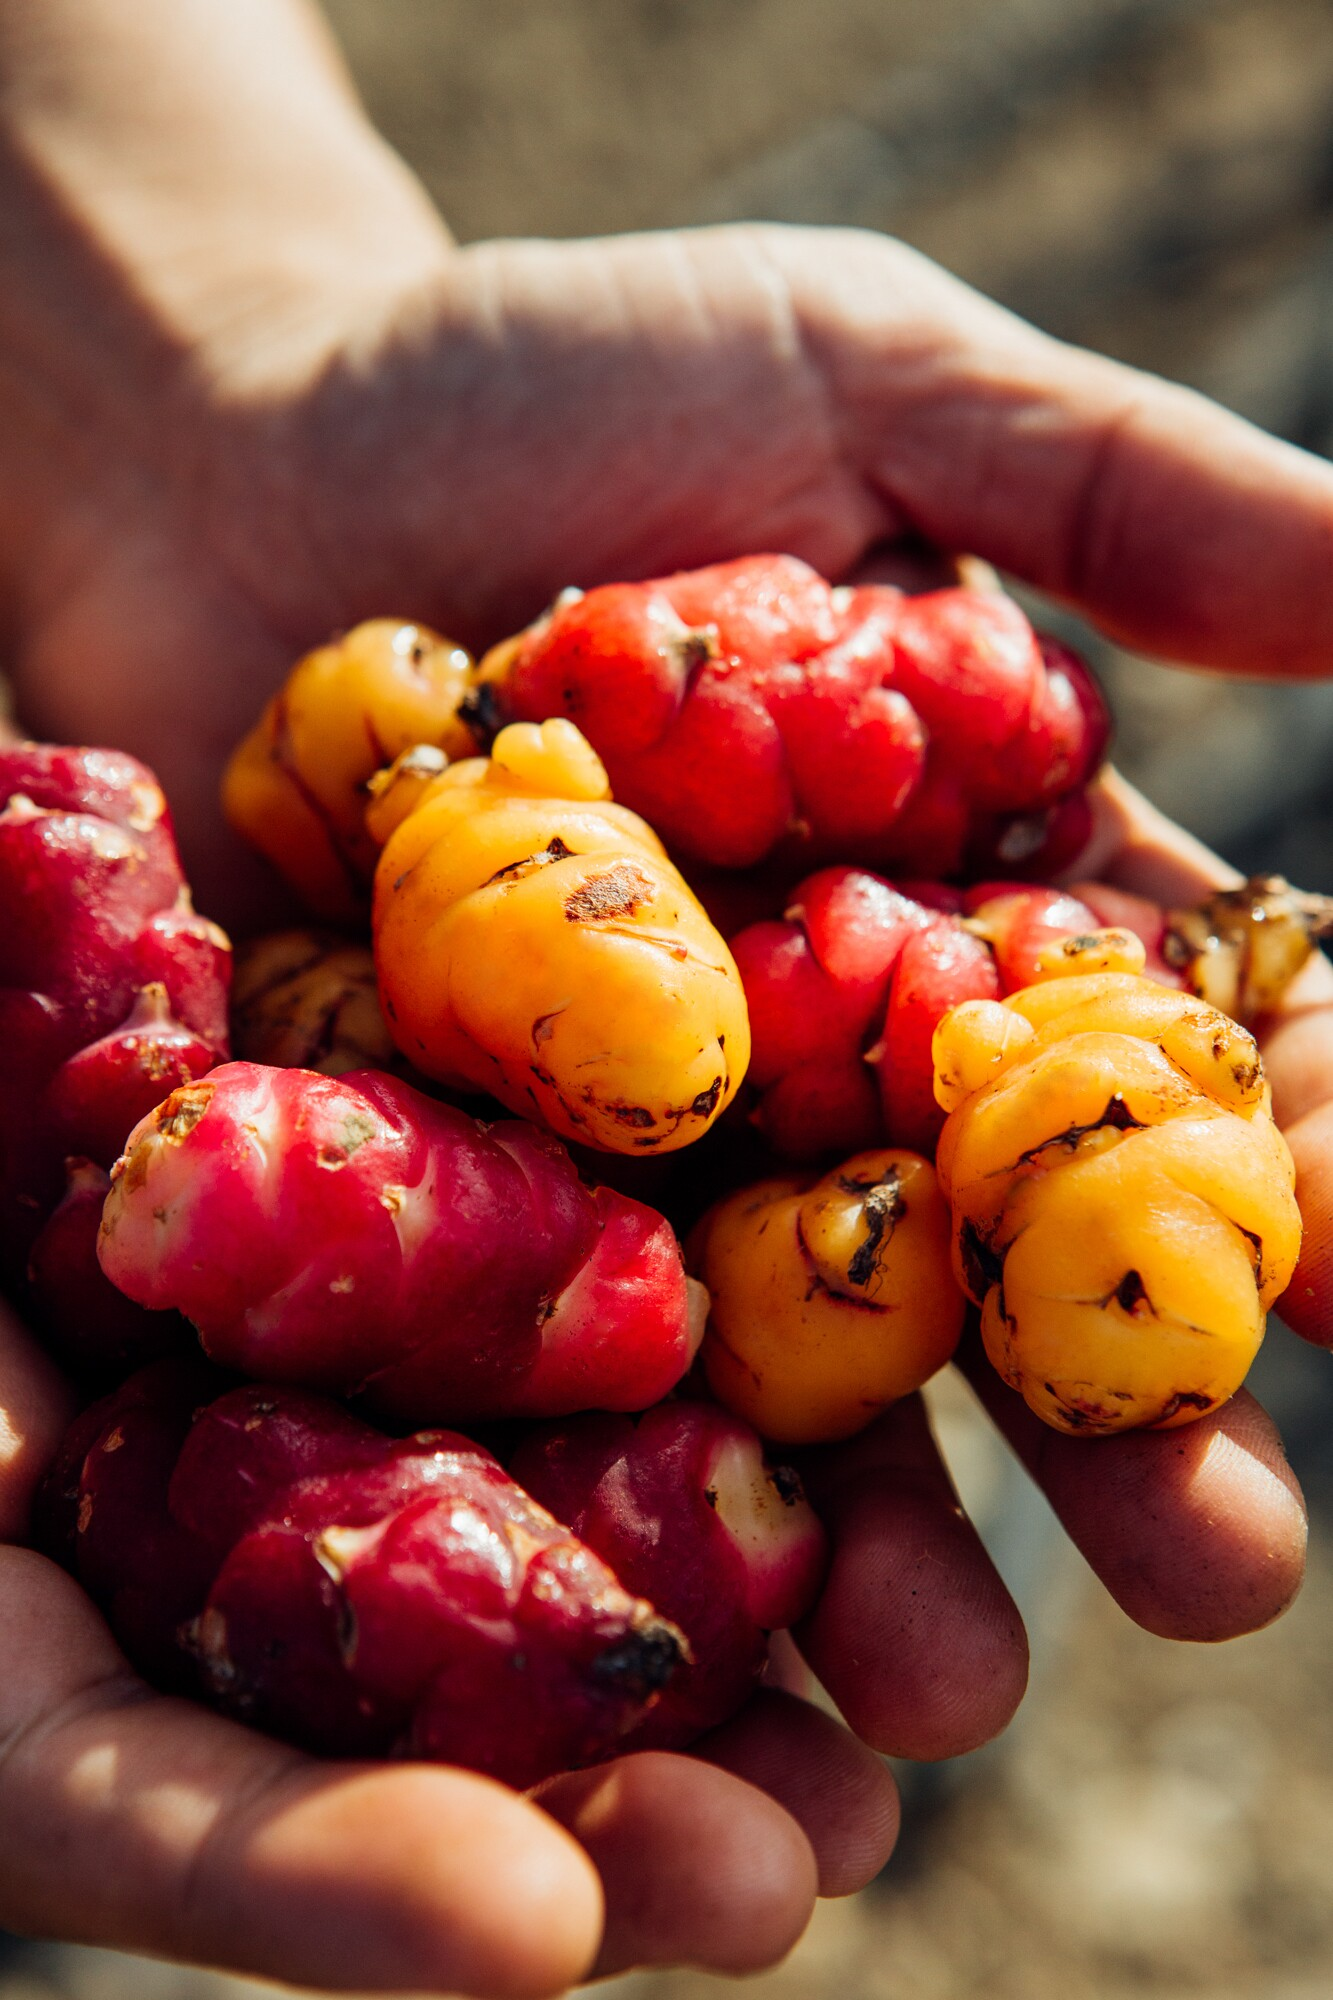 Aaron Choi holds a batch of red and yellow oca vegetables.